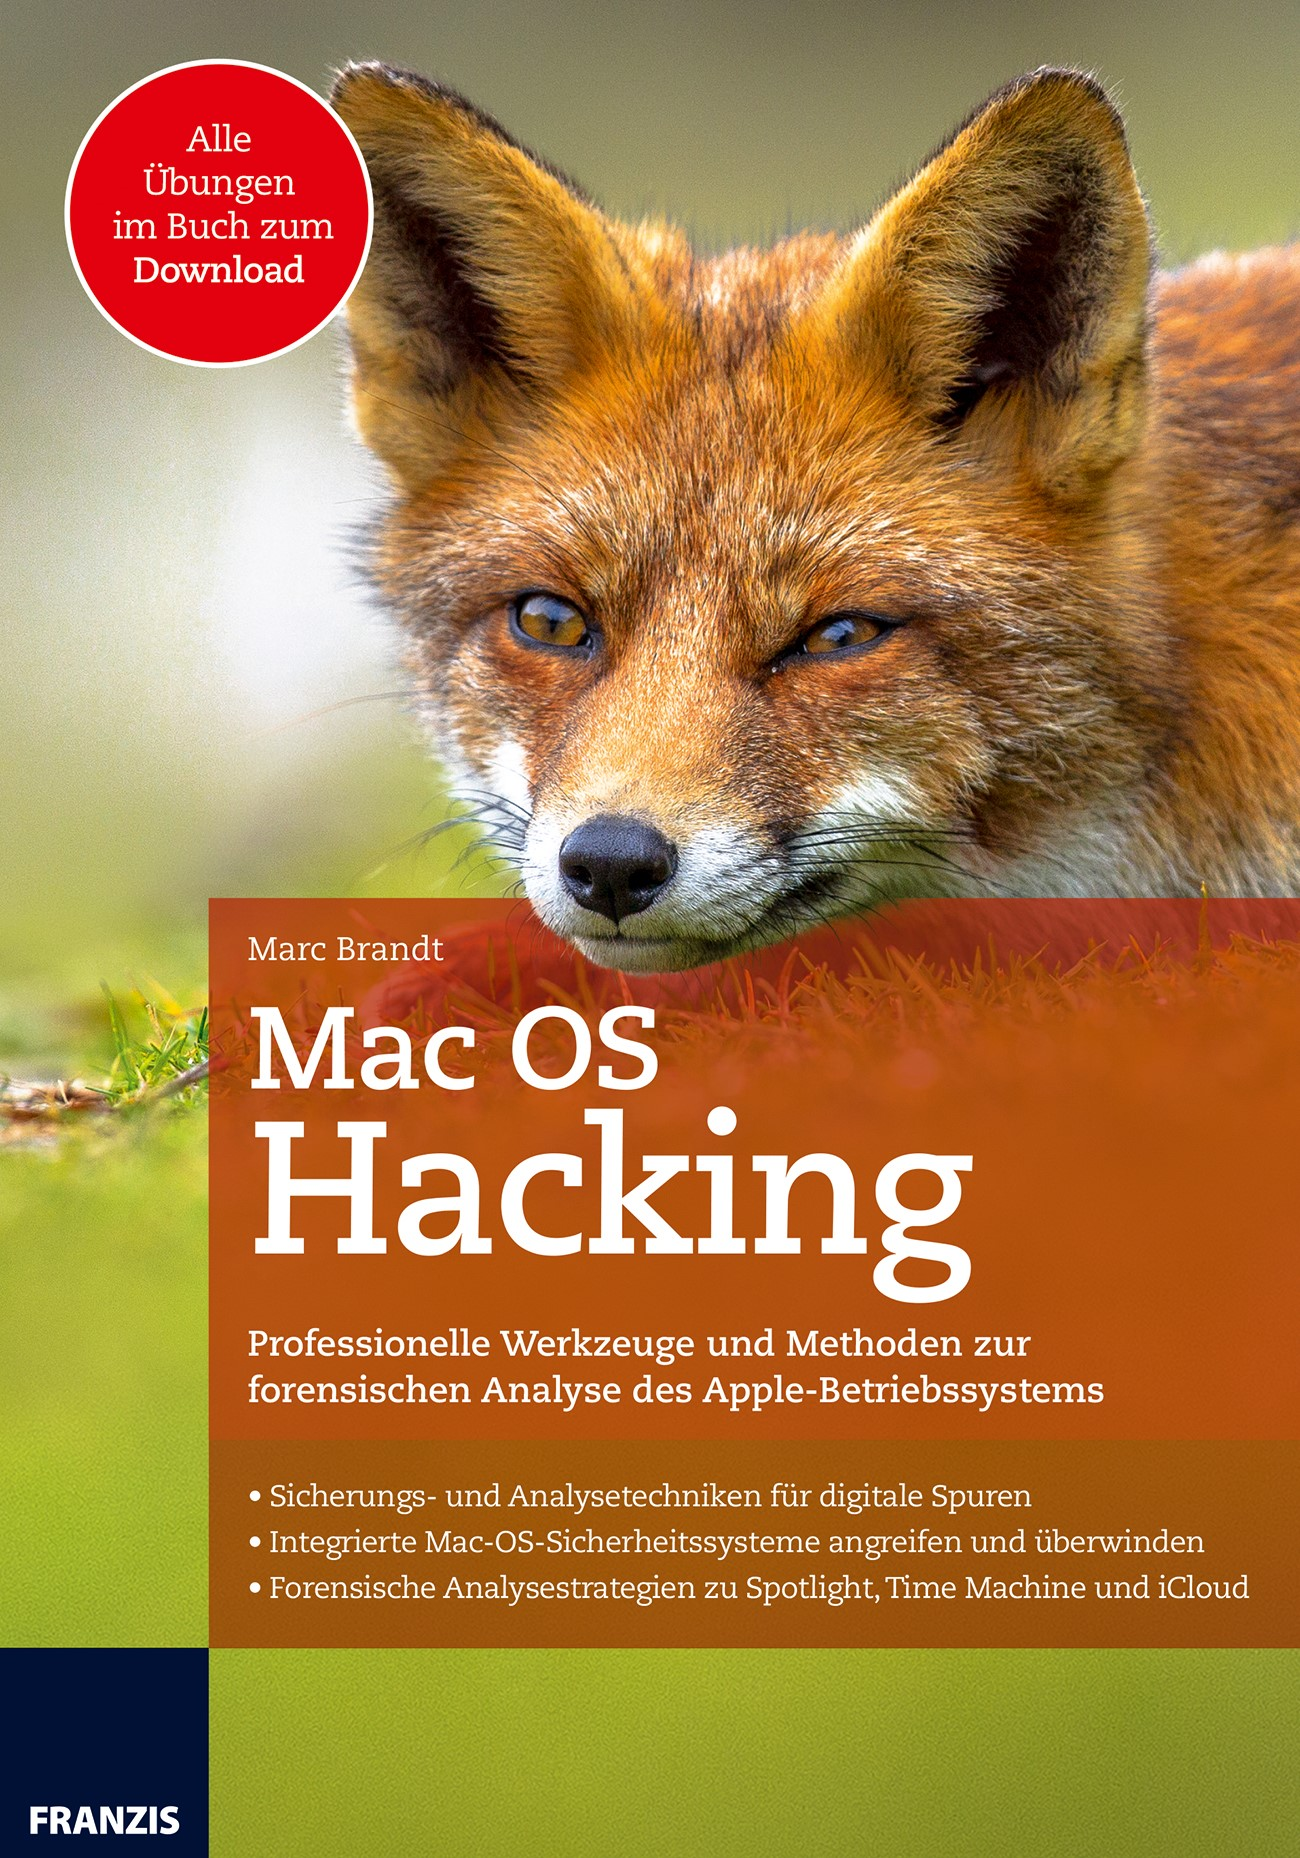 Mac OS Hacking | Brandt, 2017 | Buch (Cover)